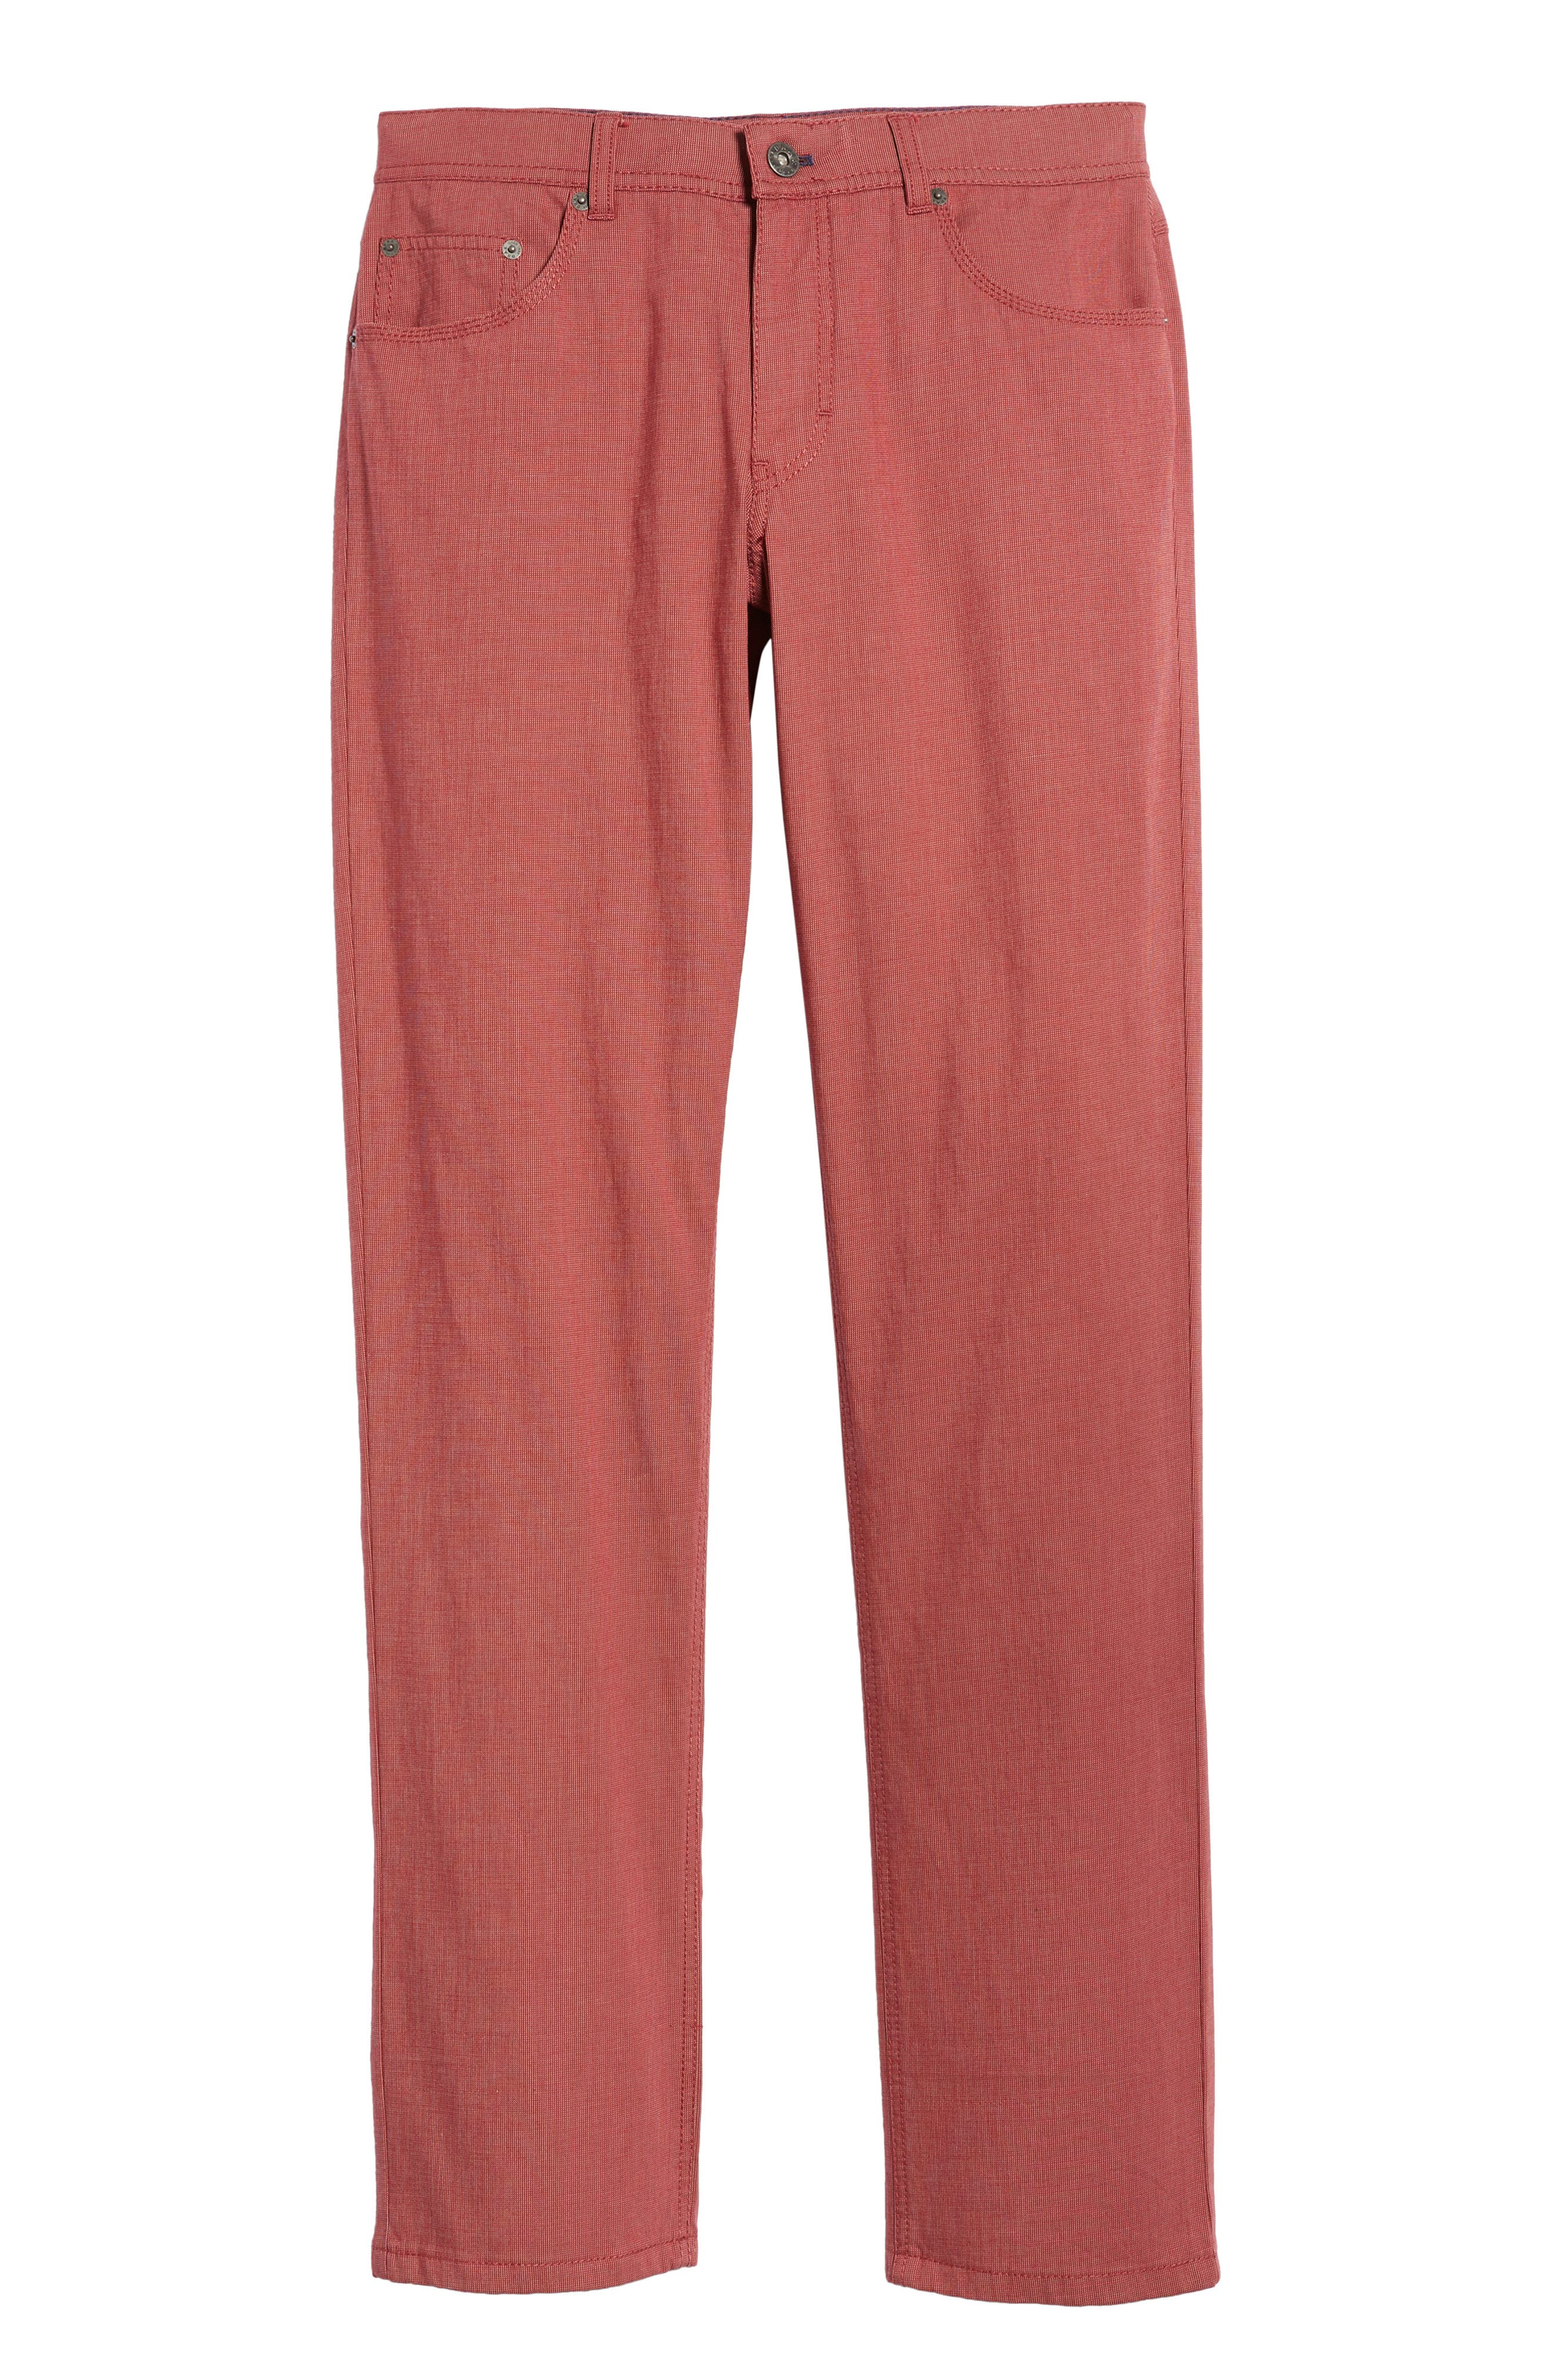 Sensation Stretch Trousers,                             Alternate thumbnail 6, color,                             Red